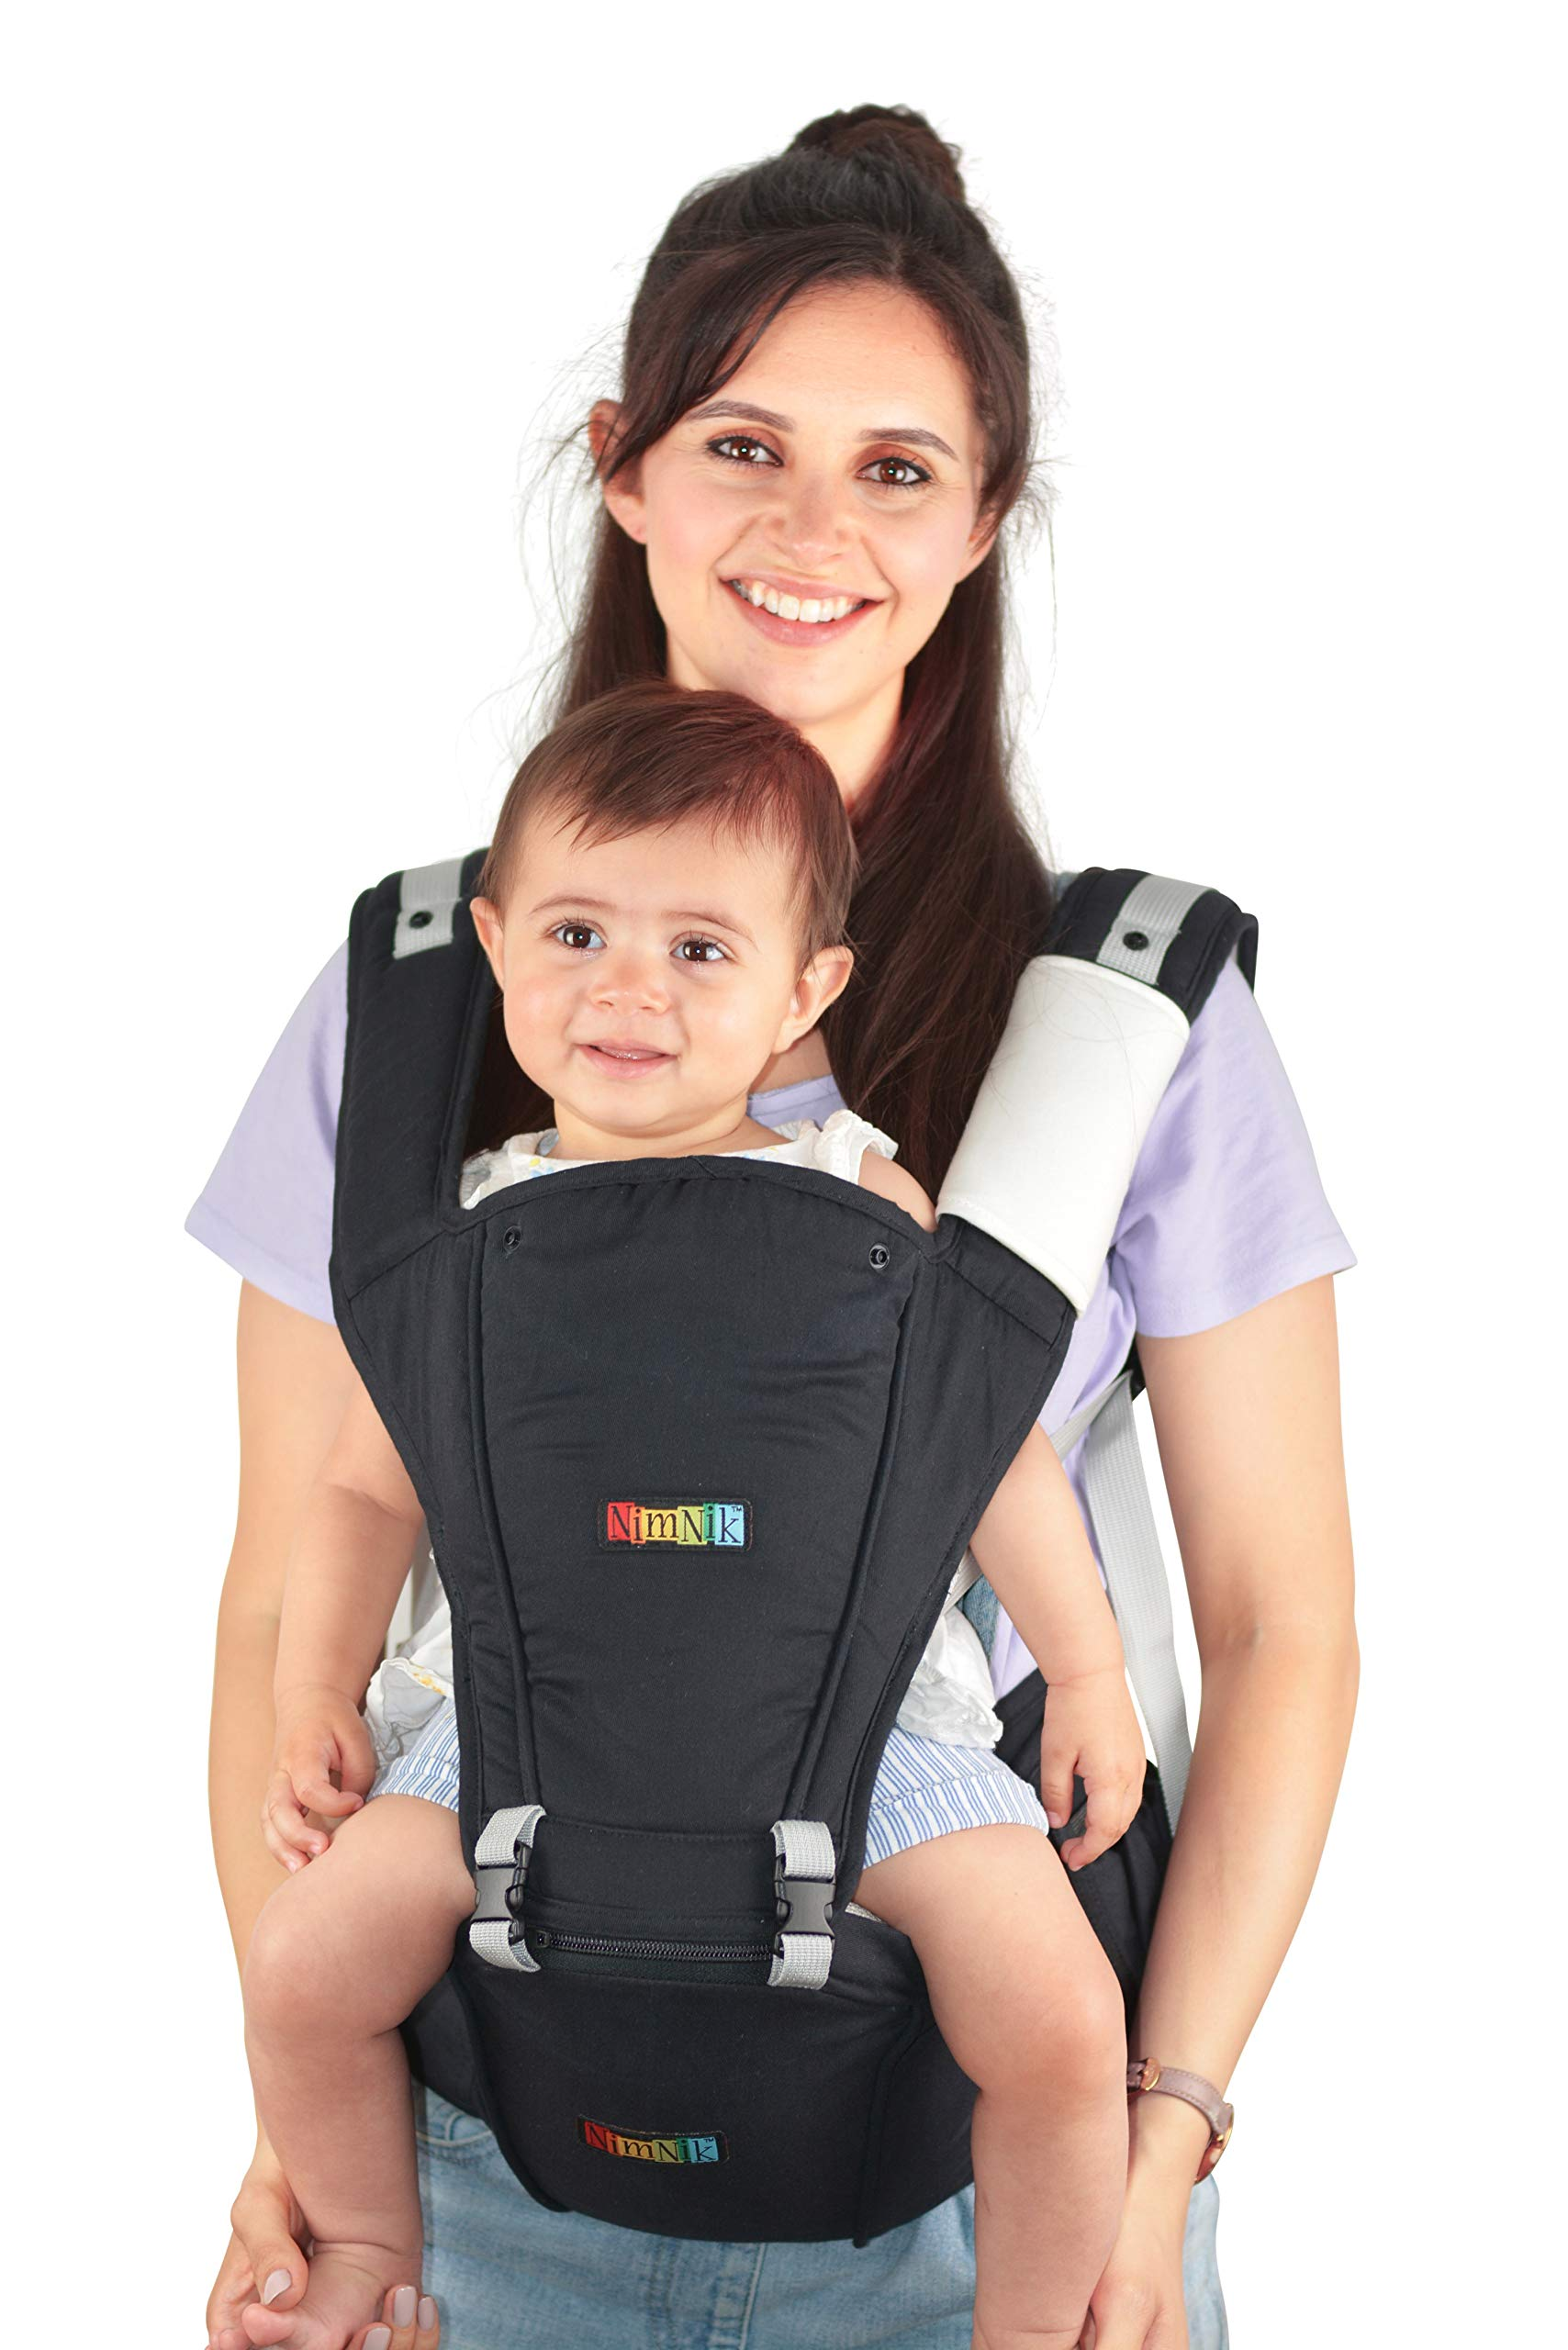 Baby Carrier Hip Seat Sling by NimNik Best Safe Backpack Carriers Back Pain Support (Pearl Black) NimNik ★ NO MORE BACK AND SHOULDER PAIN - NimNik offers an innovation in baby carrying fashion and quality for girls and boys! This Soft Structured Baby Carrier is not only versatile with four different carry positions, but perfectly comfortable for both you and your little one. That twined with unmatched durability makes NimNik Baby Carriers a popular choice in ergonomic baby carriers! ★ DESIGNED FOR STYLE AND COMFORT - With superior padding in our adjustable EXTRA LONG WAIST STRAPS (50 inches / 125 cms) and ergonomic lumbar support for you, say goodbye to backpain and other back, hip and shoulder related carrying issues. With the extremely ergonomic hip seat, you can rest assured that your little one is sitting pretty in style and comfort no matter how you carry! ★ PREMIUM COTTON FOR SOFT AND COSY FEELING - From front facing out and facing in, to hip, to back carry, you'll be comfortable, and so will children. Not every baby likes to be carried the same way, from 6 months and up. Our baby carrier comes with a wide range of comfortable carry positions to use as best suits the both of you, without the back pain after maternity. 1